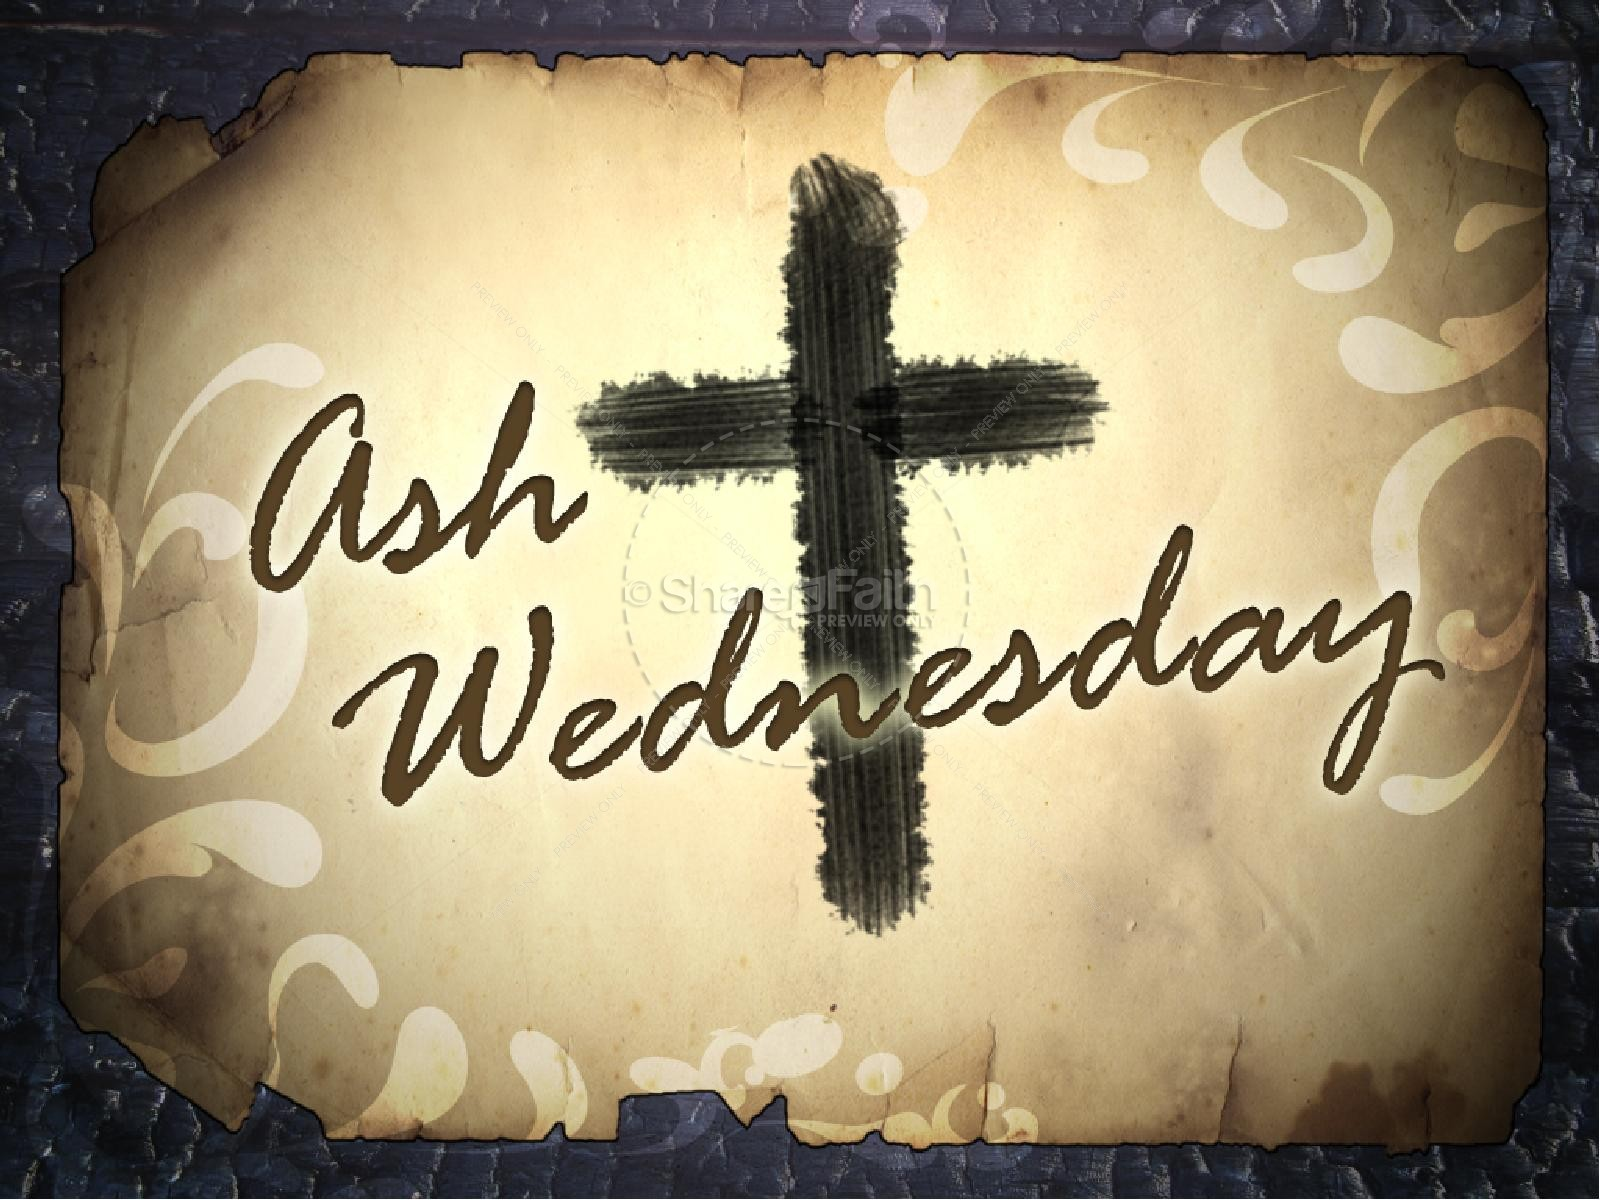 Ash Wednesday with Cross